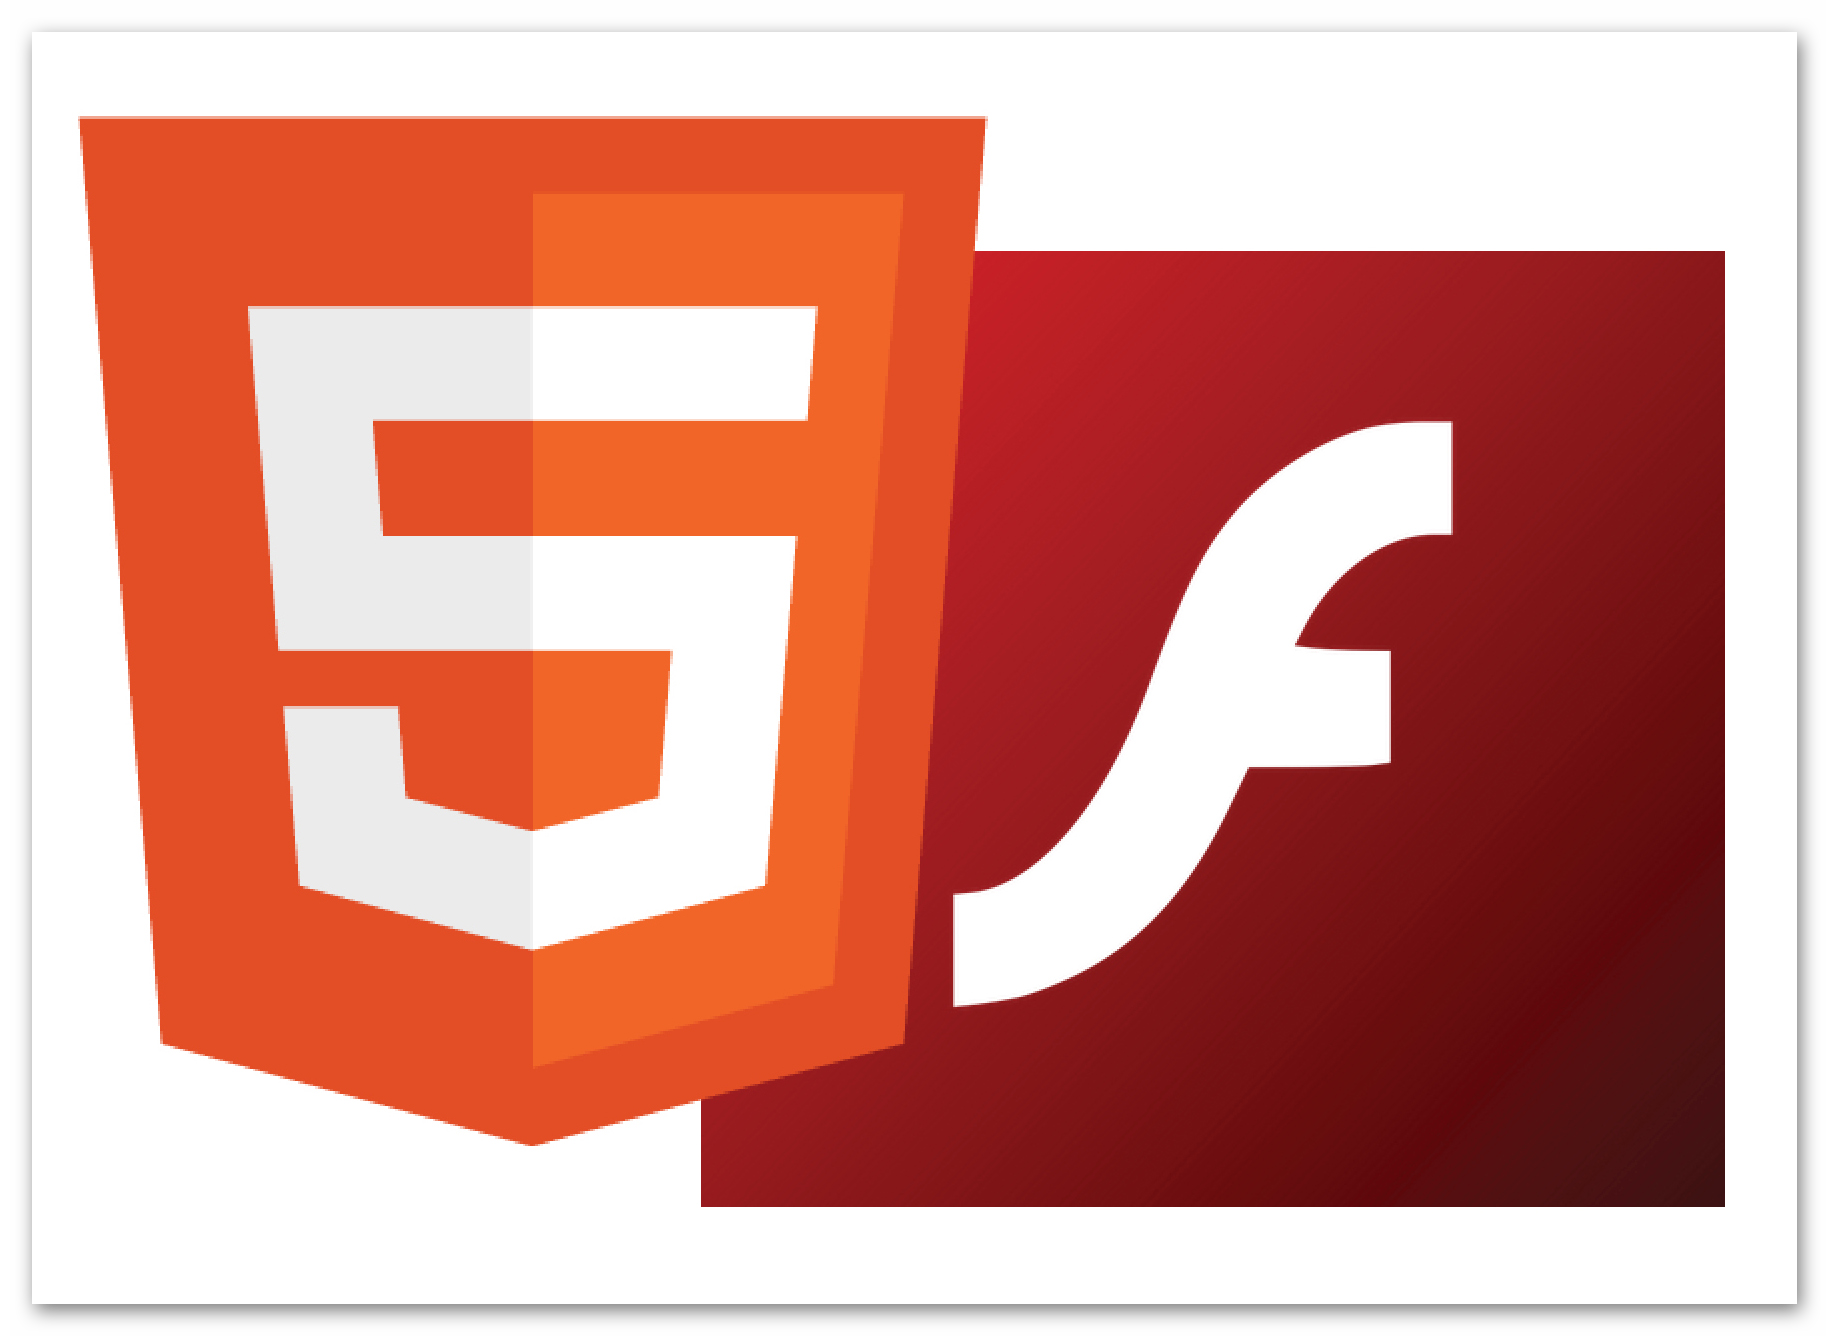 Картинка HTML5 и Adobe Flash Player